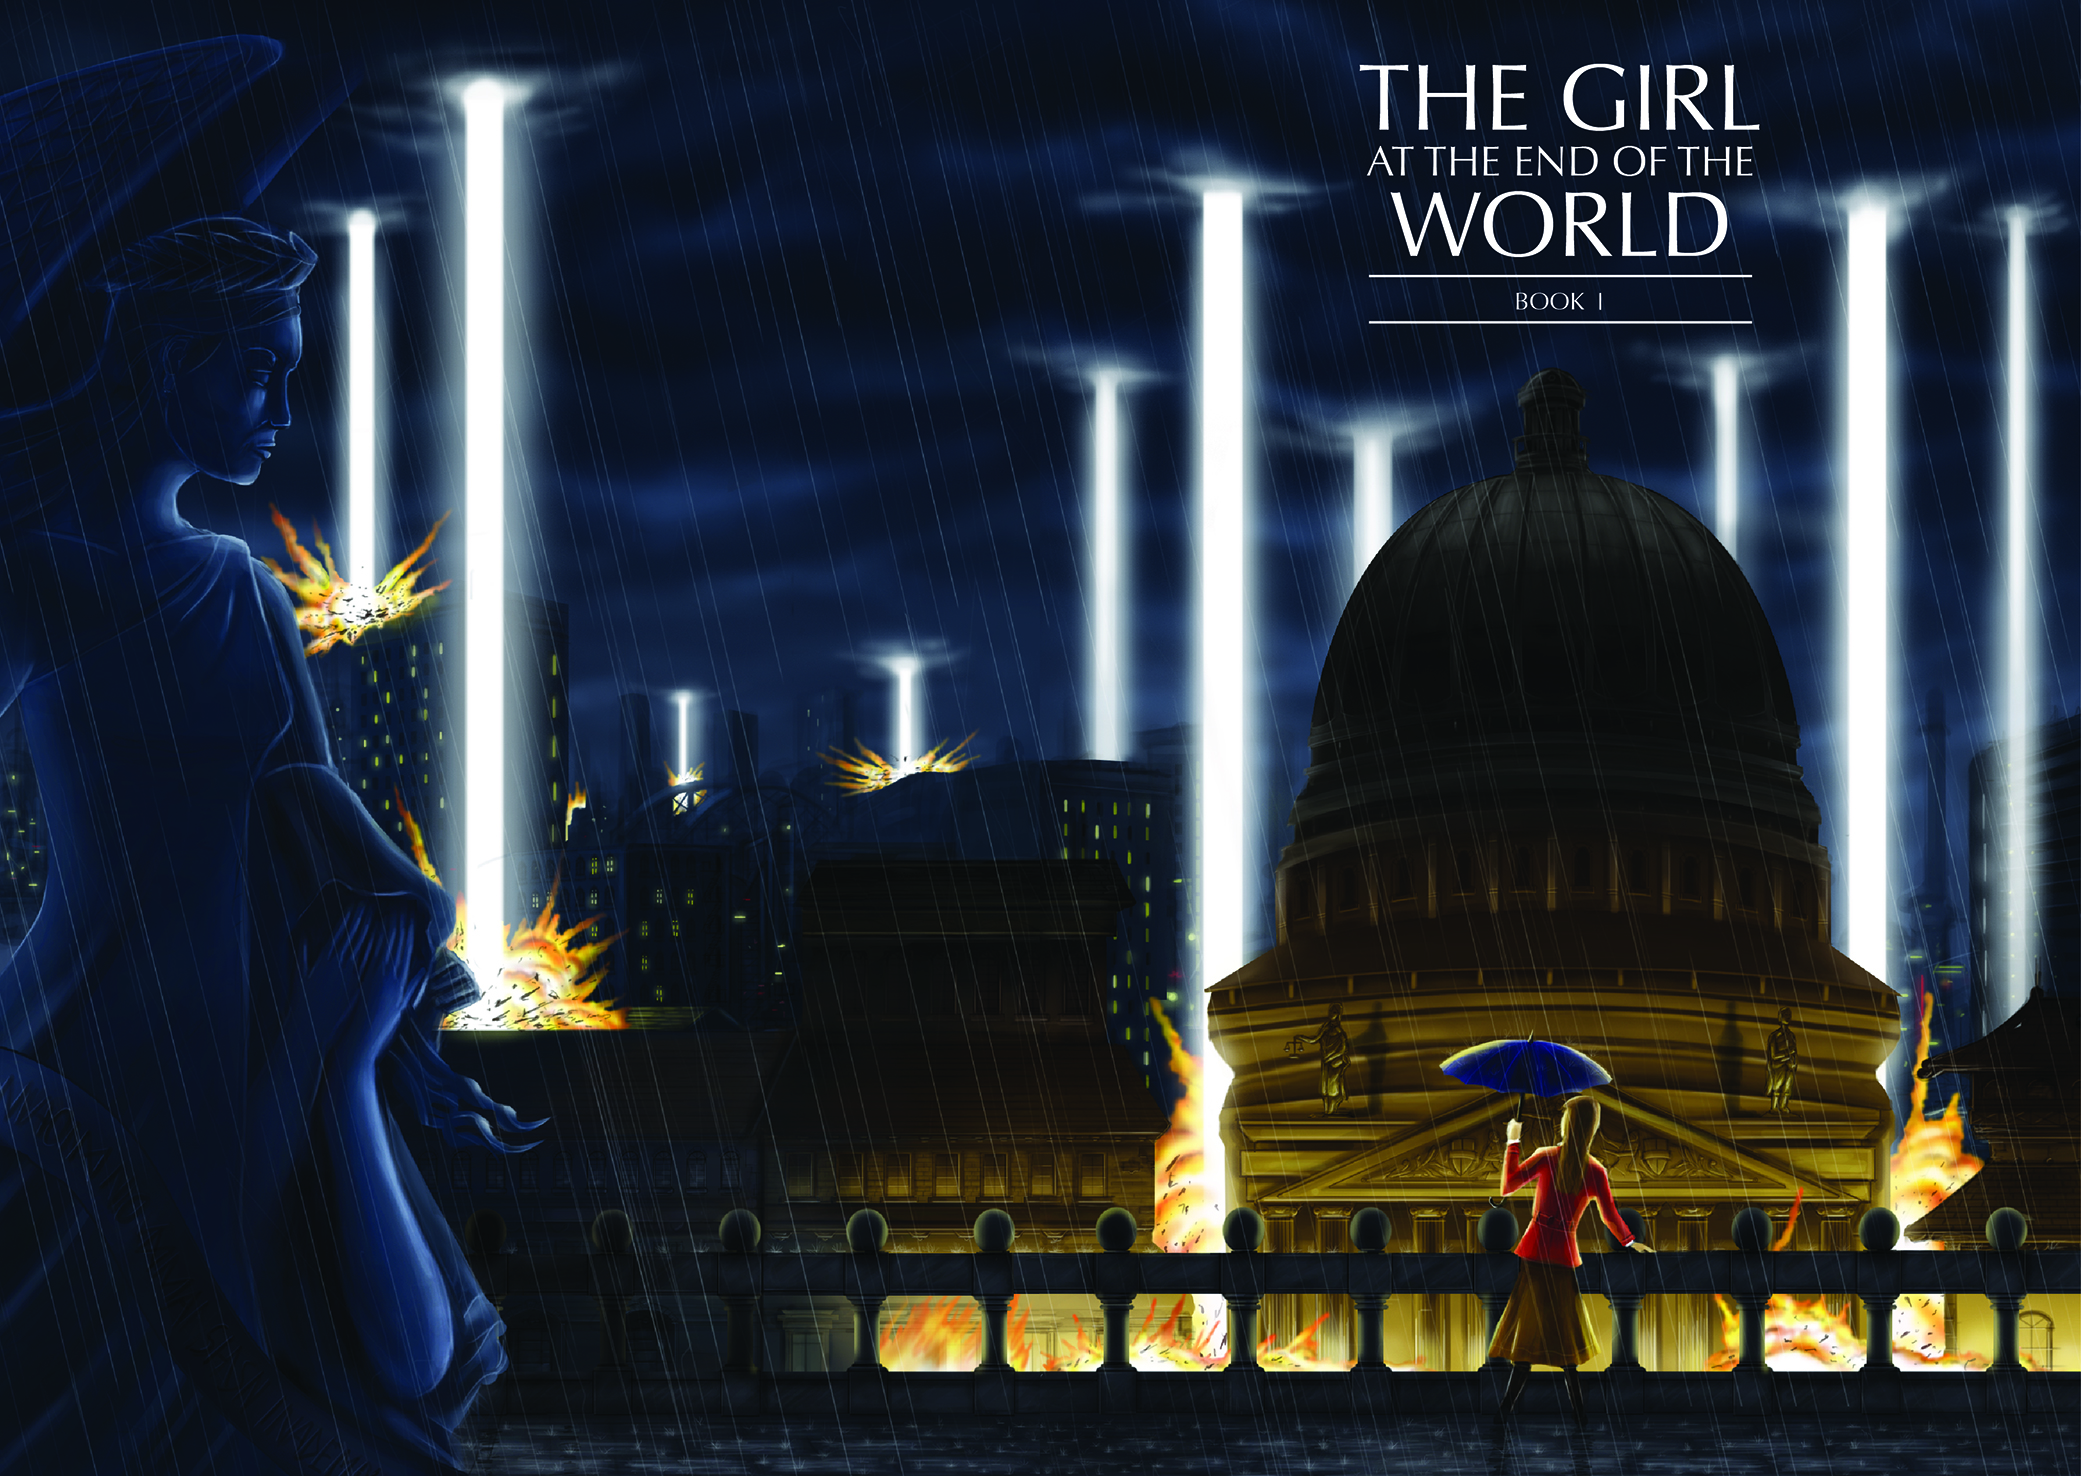 The Girl at the End of the Wold Vol 1 by Various